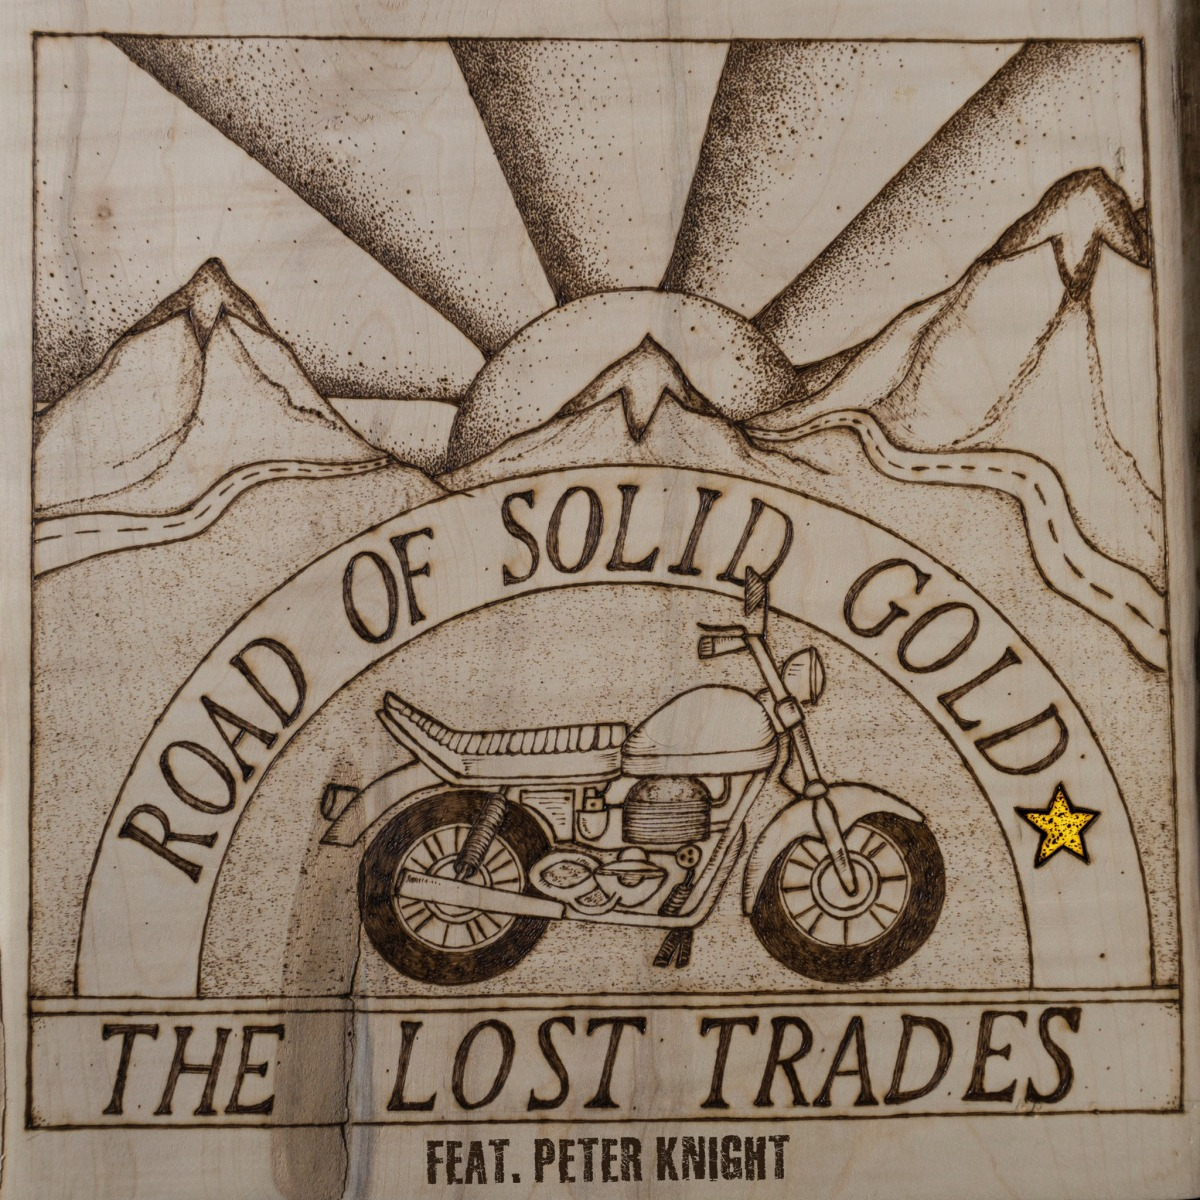 Looking Forward to the Trades' Road of SolidGold